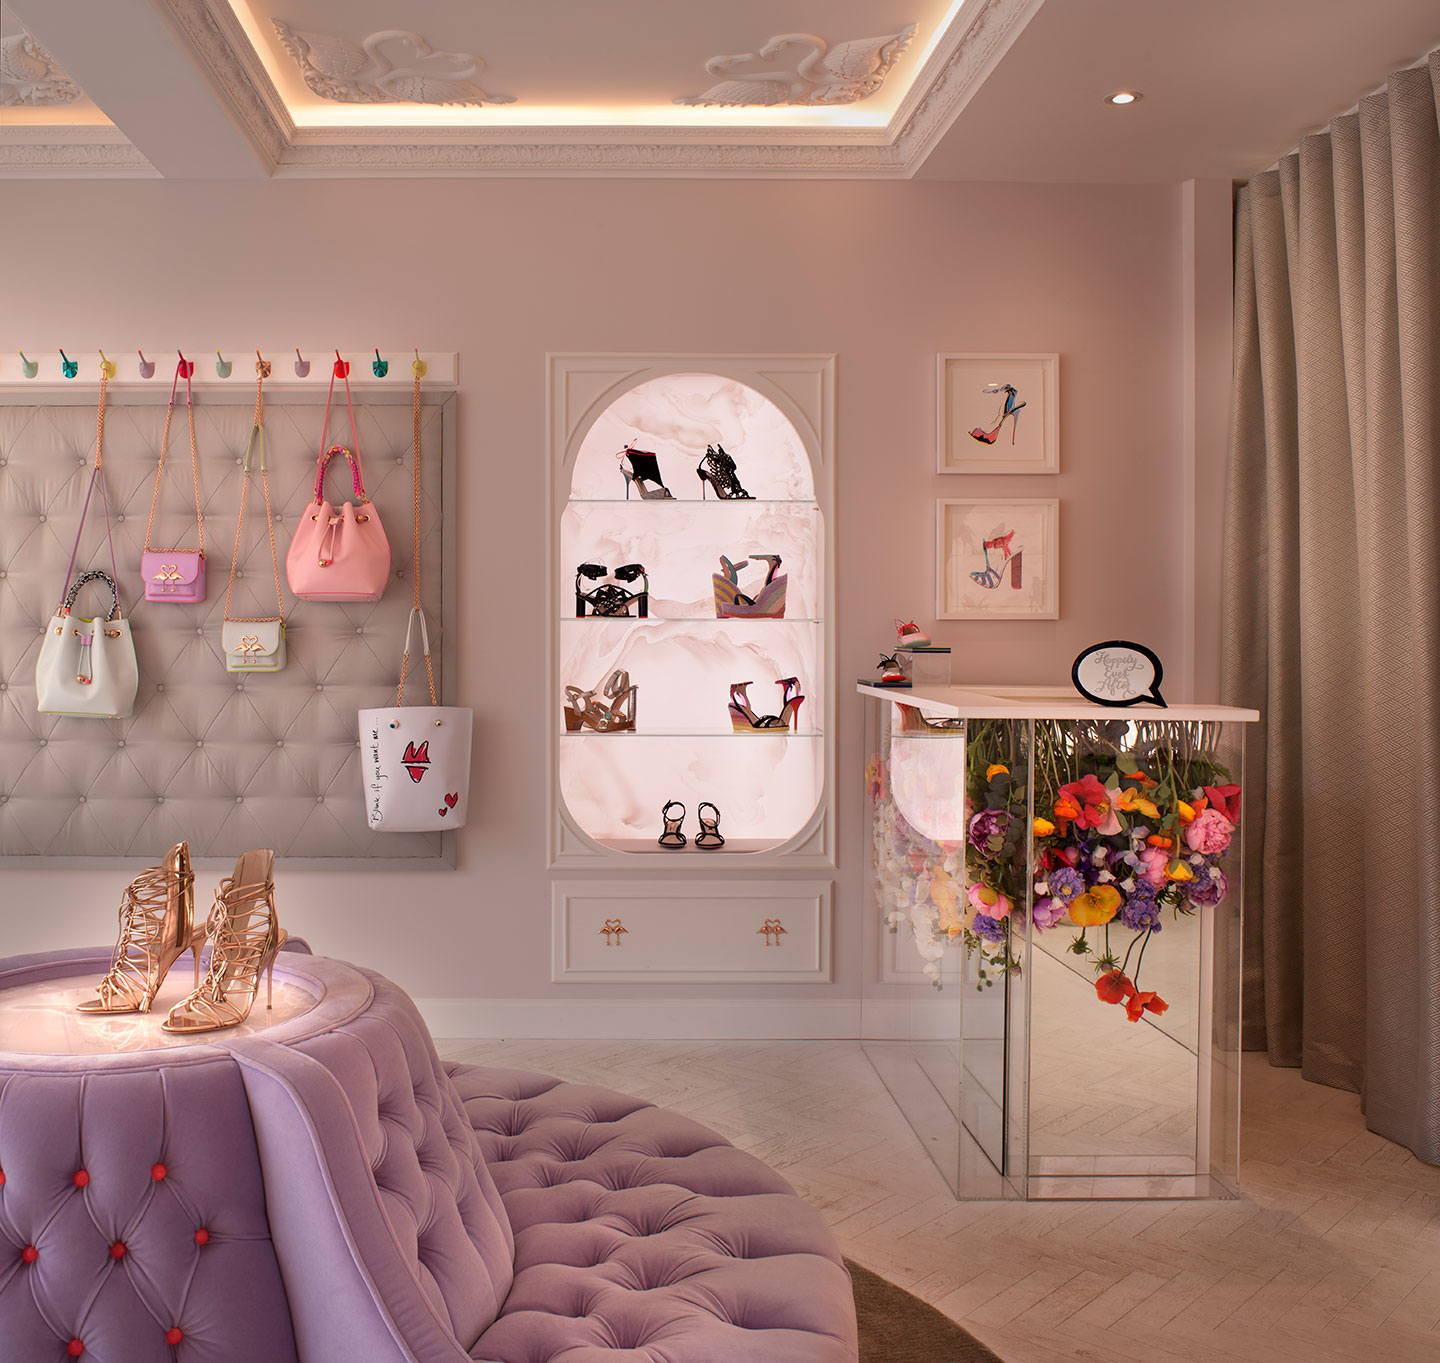 Sophia Webster shoes and handbags are on display in the designed interior of the flagship store in Mayfair